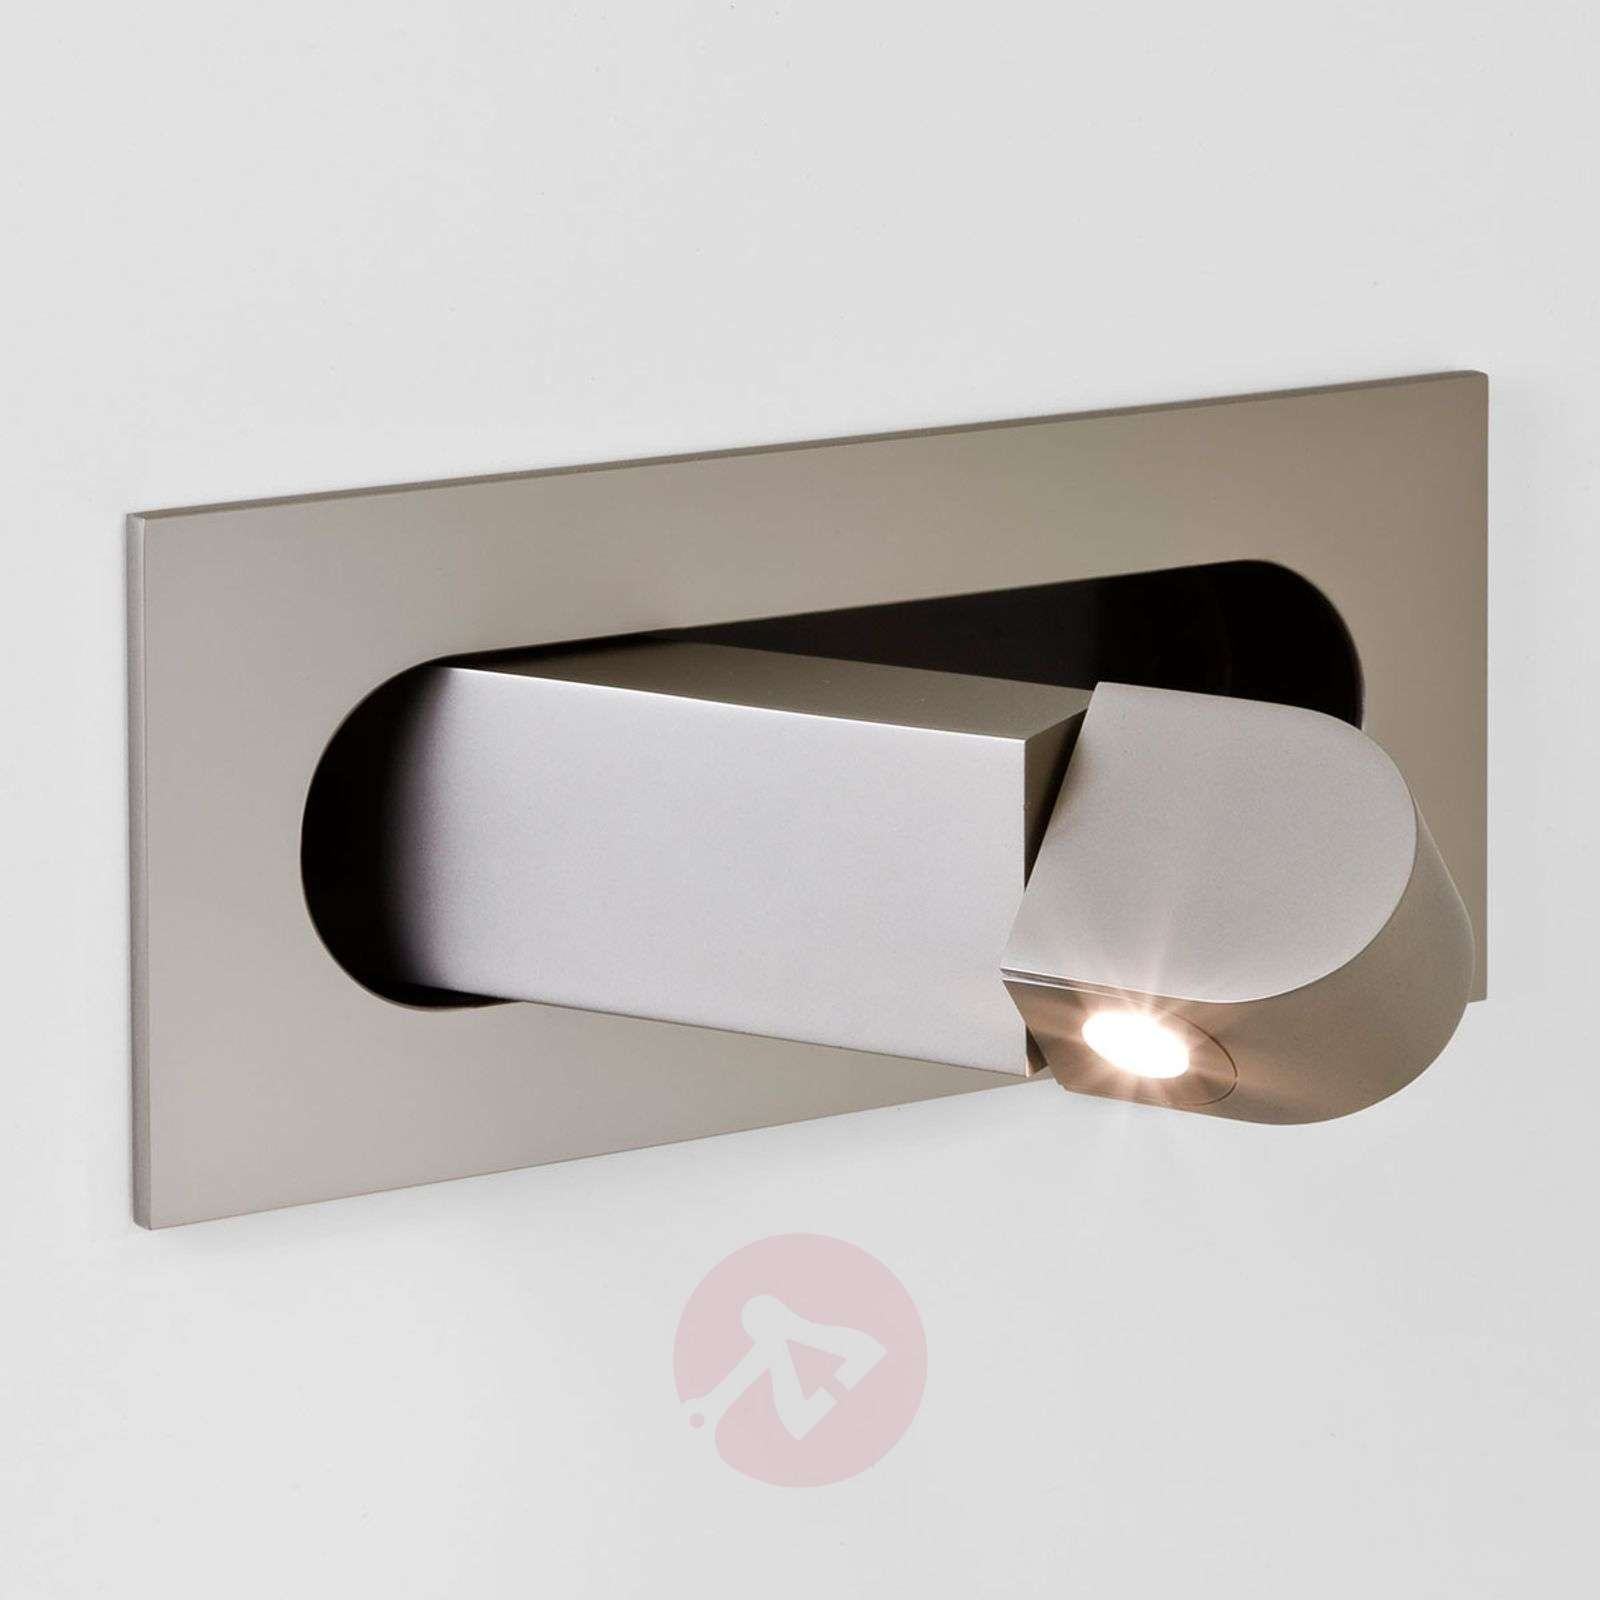 Lámpara de pared LED Digit luz de lectura, níquel-1020476-04